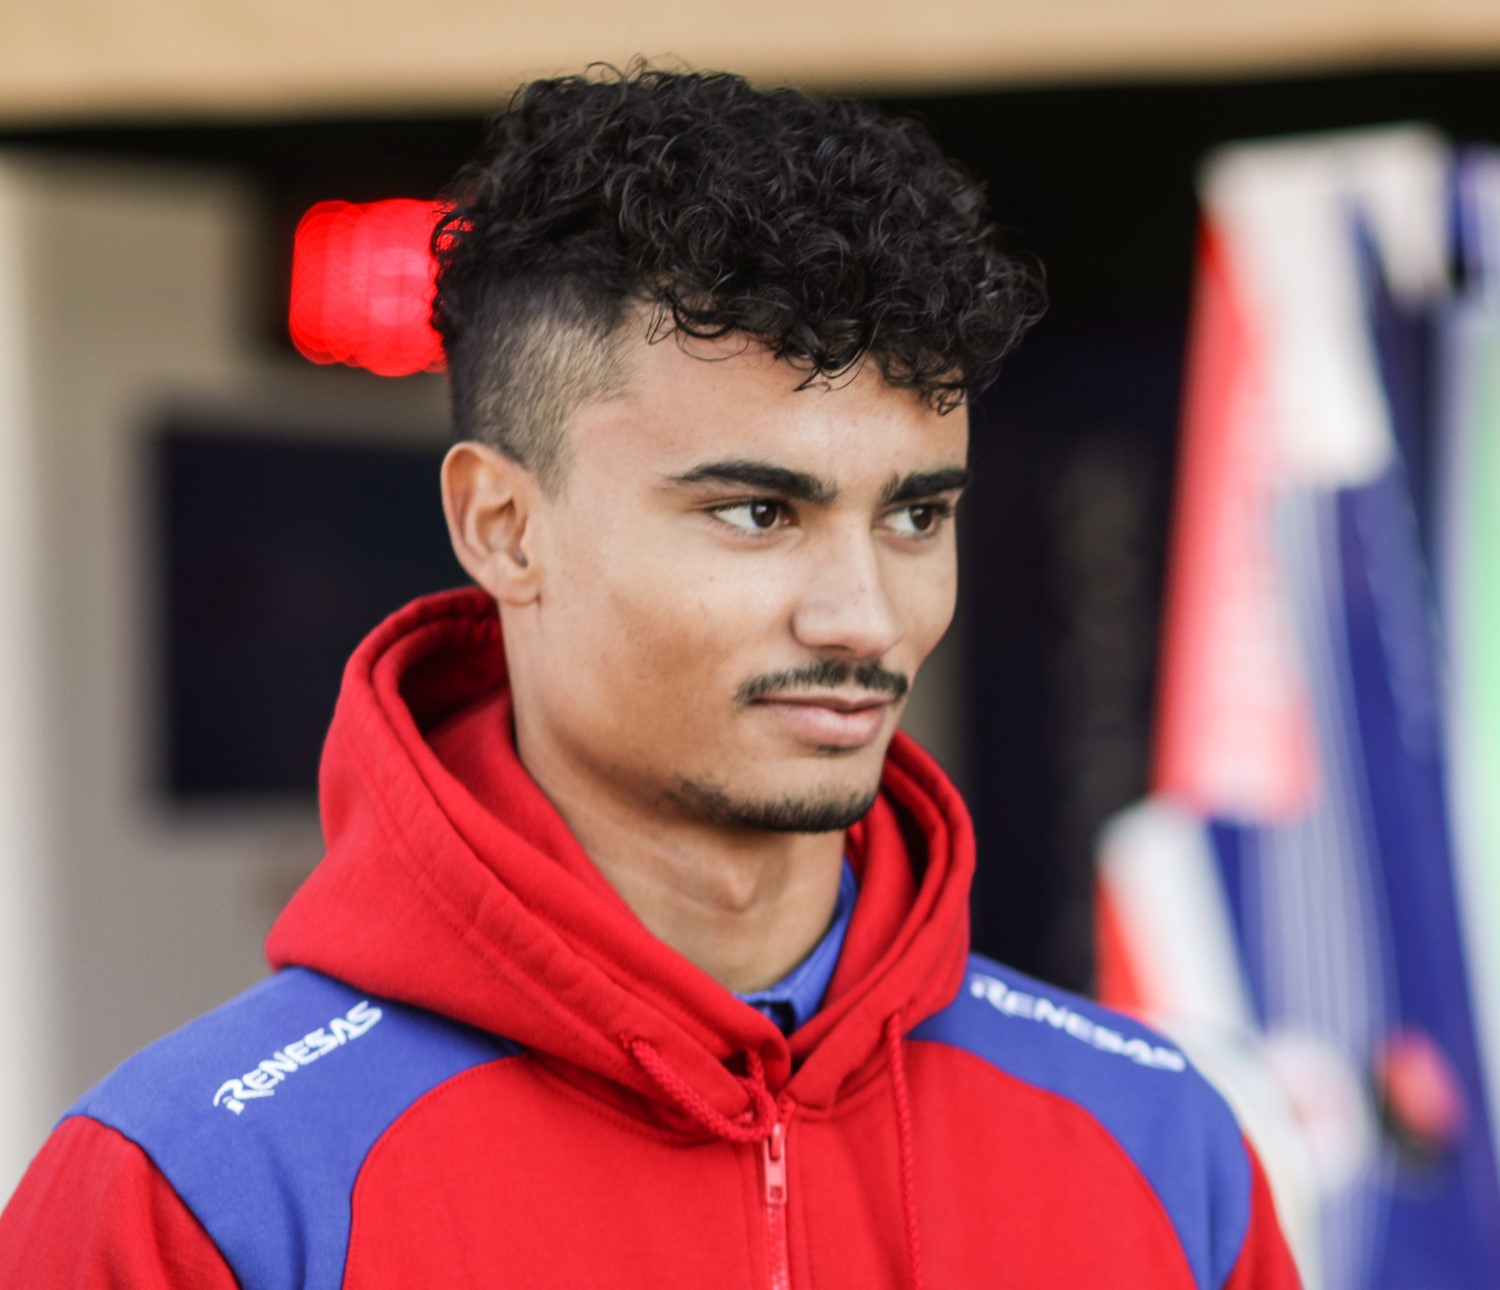 Is Pascal Wehrlein's check big enough?